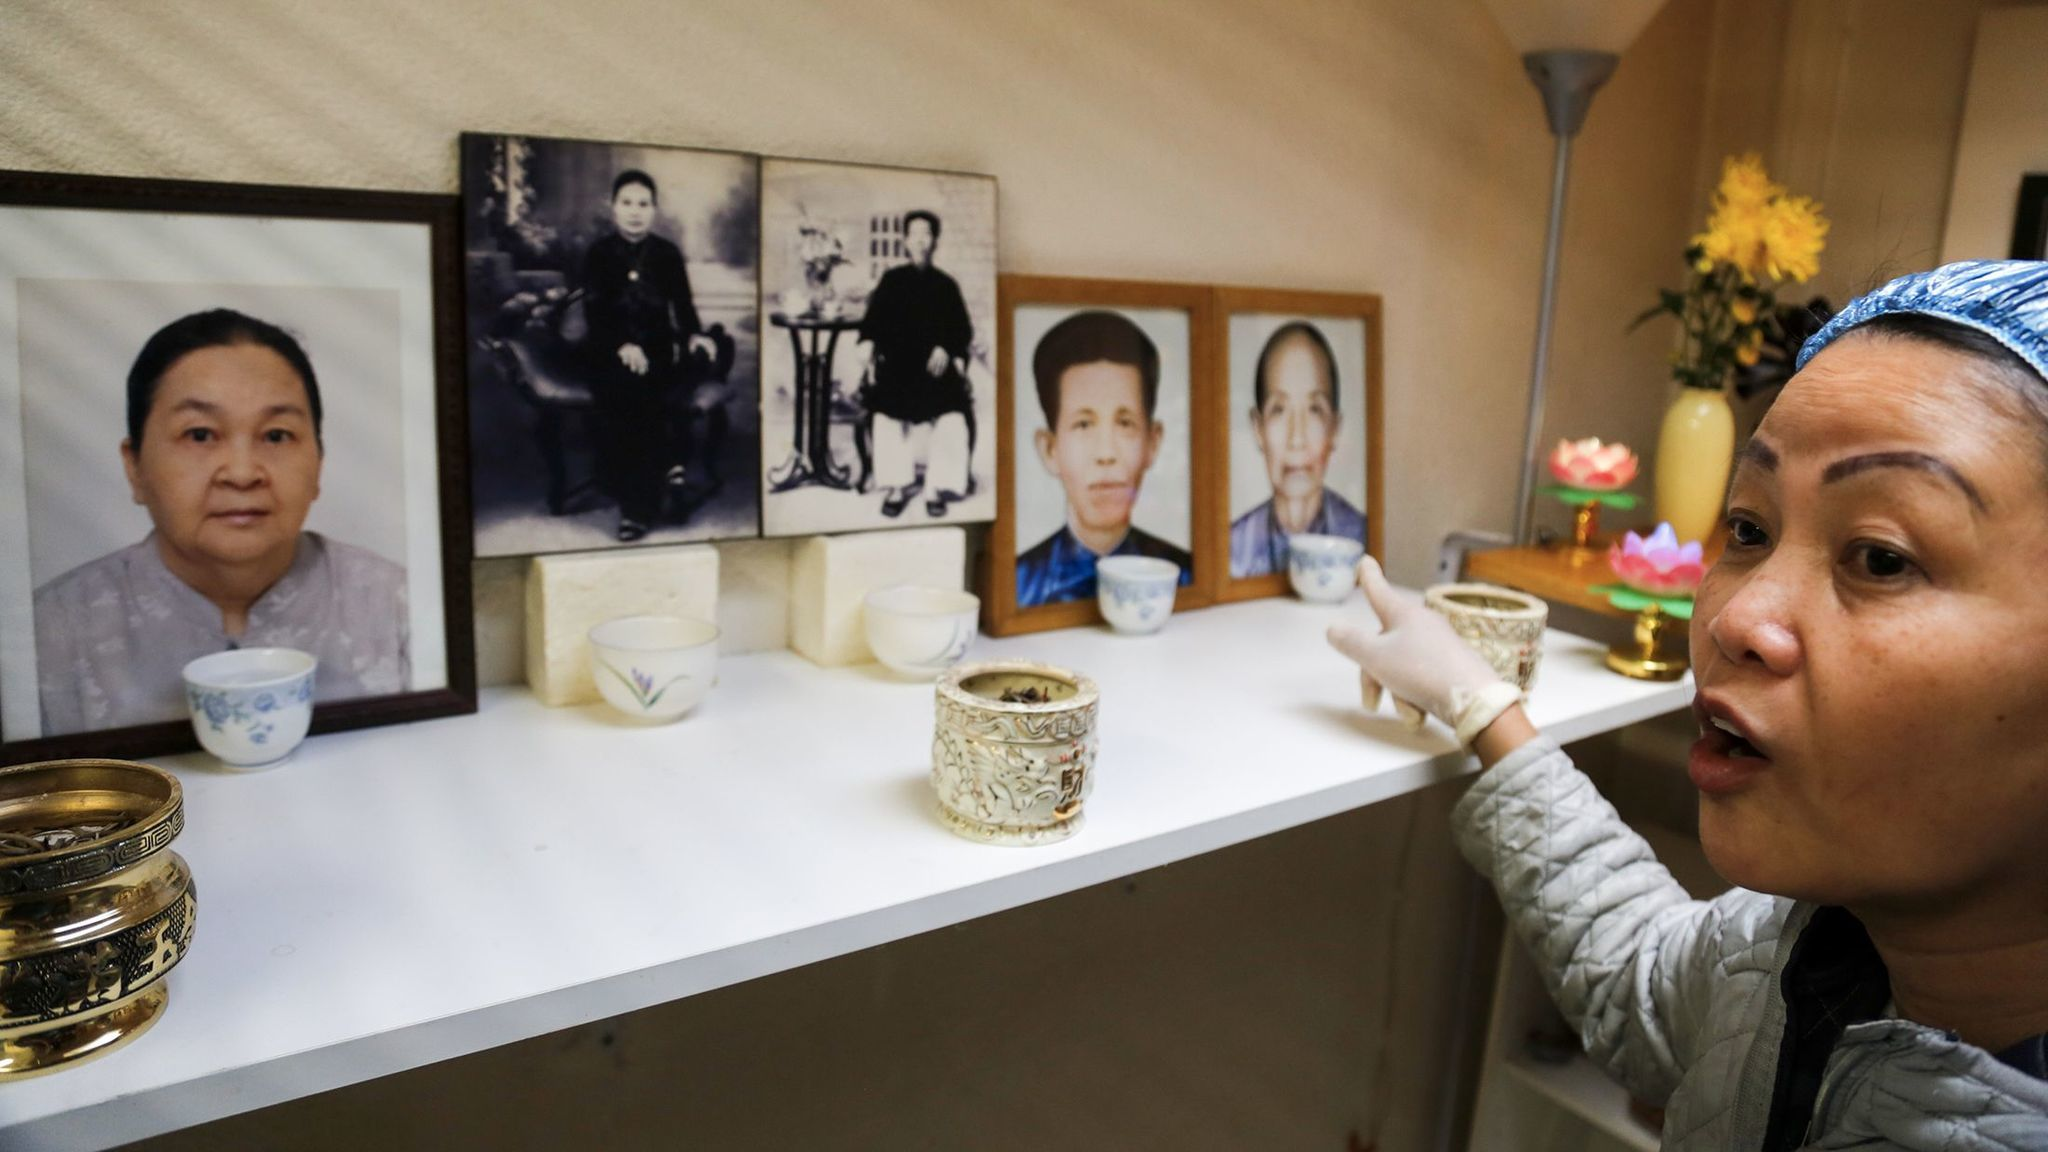 Hue Phan points to pictures of her and her husband's parents and grandparents arranged for a home shrine.